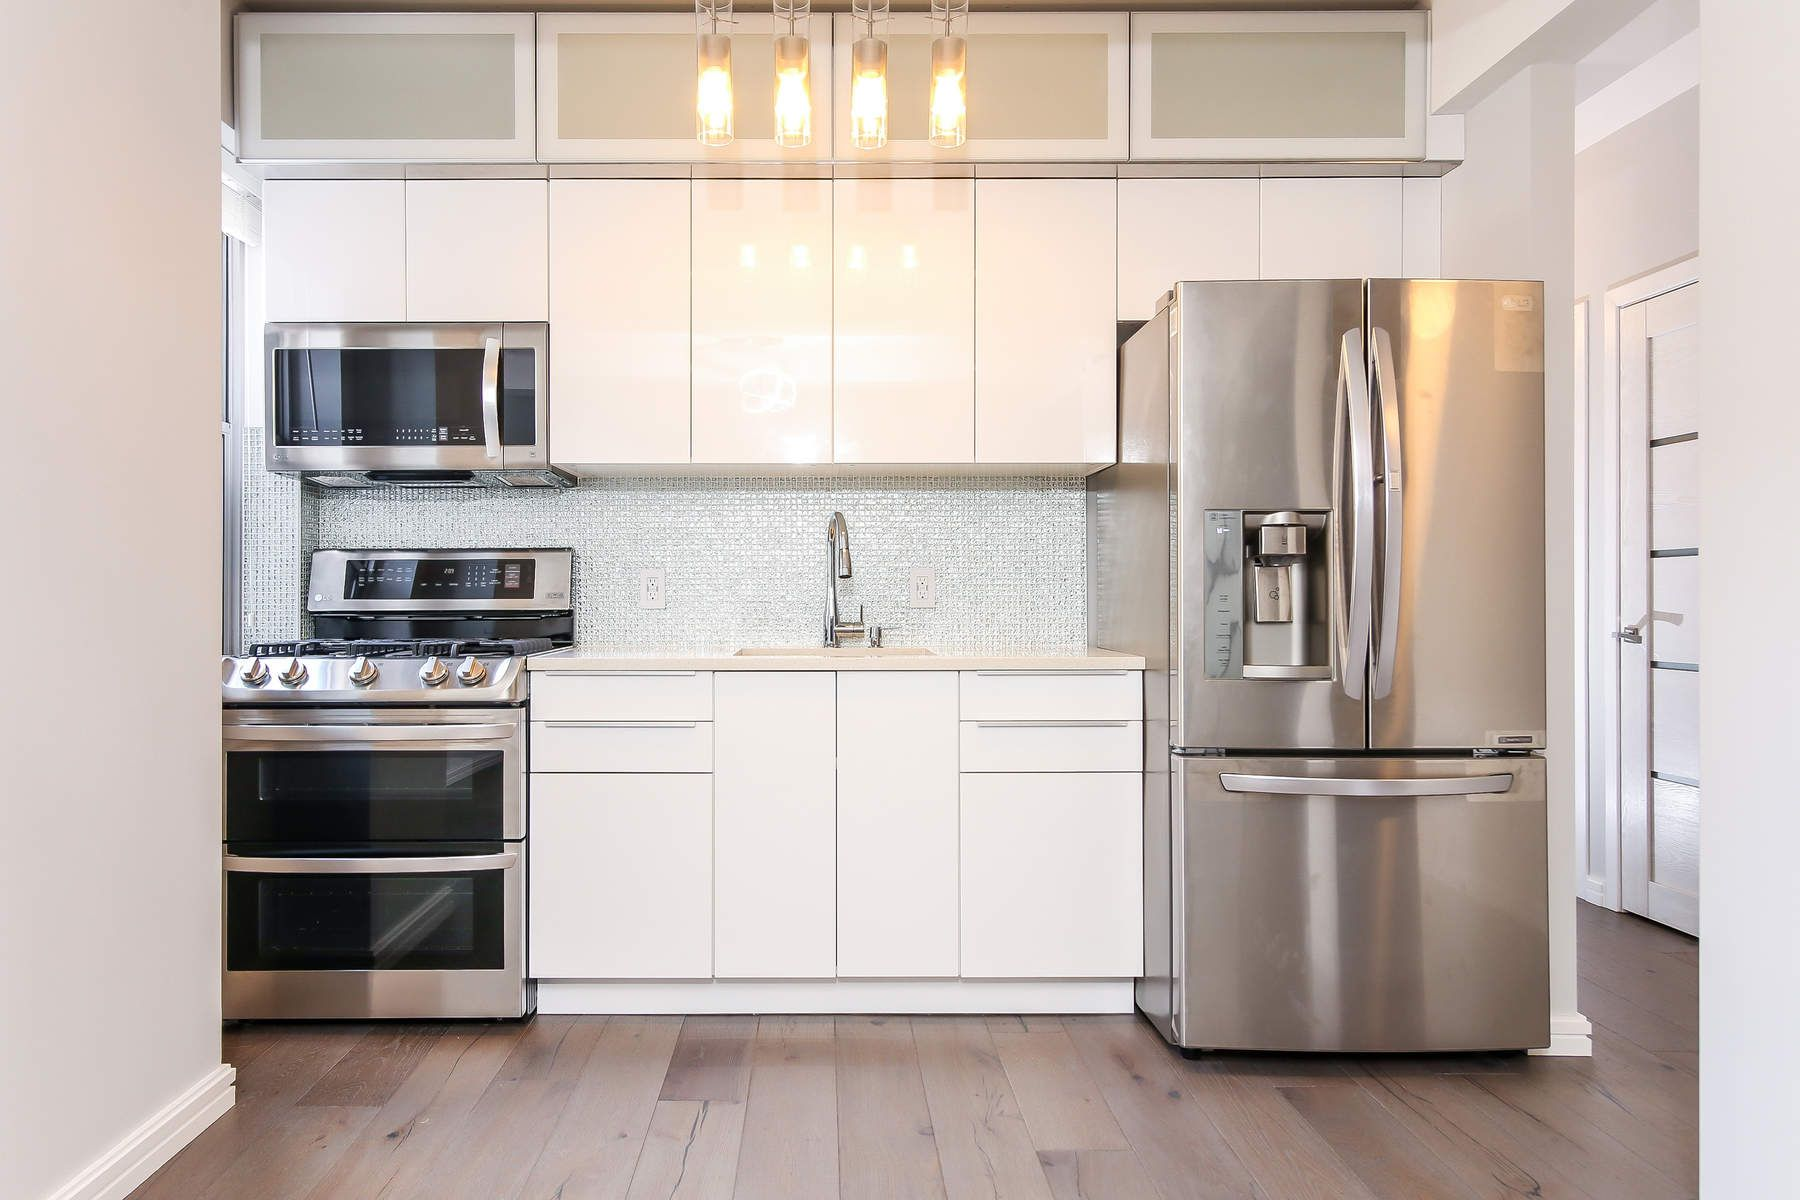 Additional photo for property listing at 550 Grand Street 550 Grand Street Apt H5G New York, New York 10002 United States